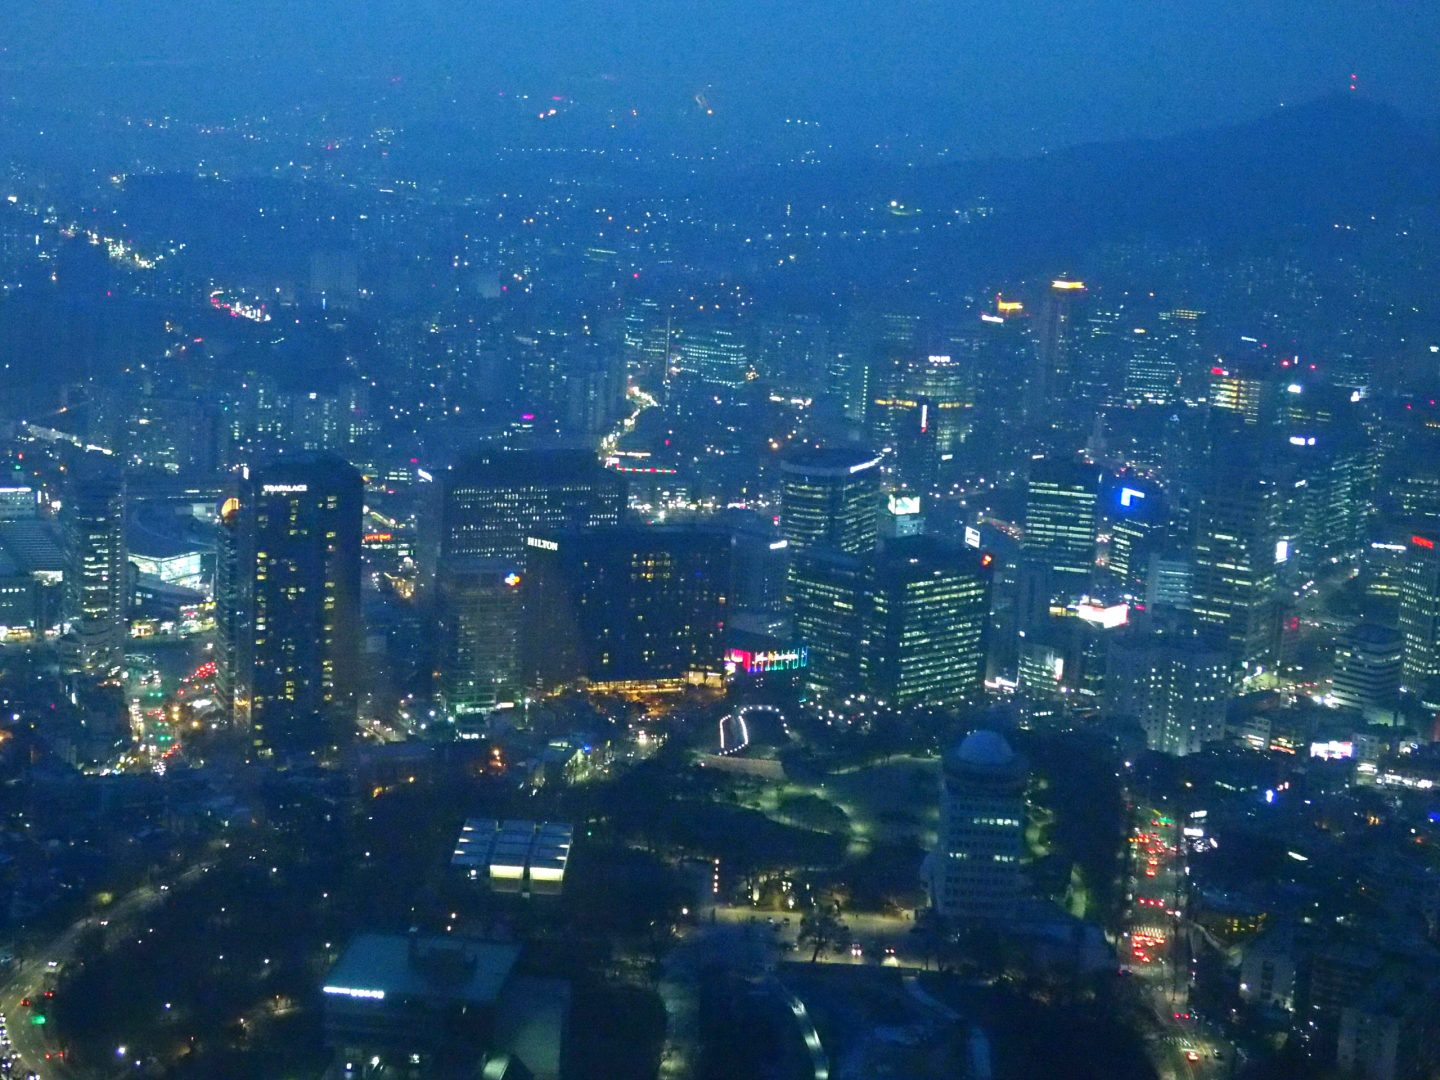 Seoul by night NTower Corée du sud